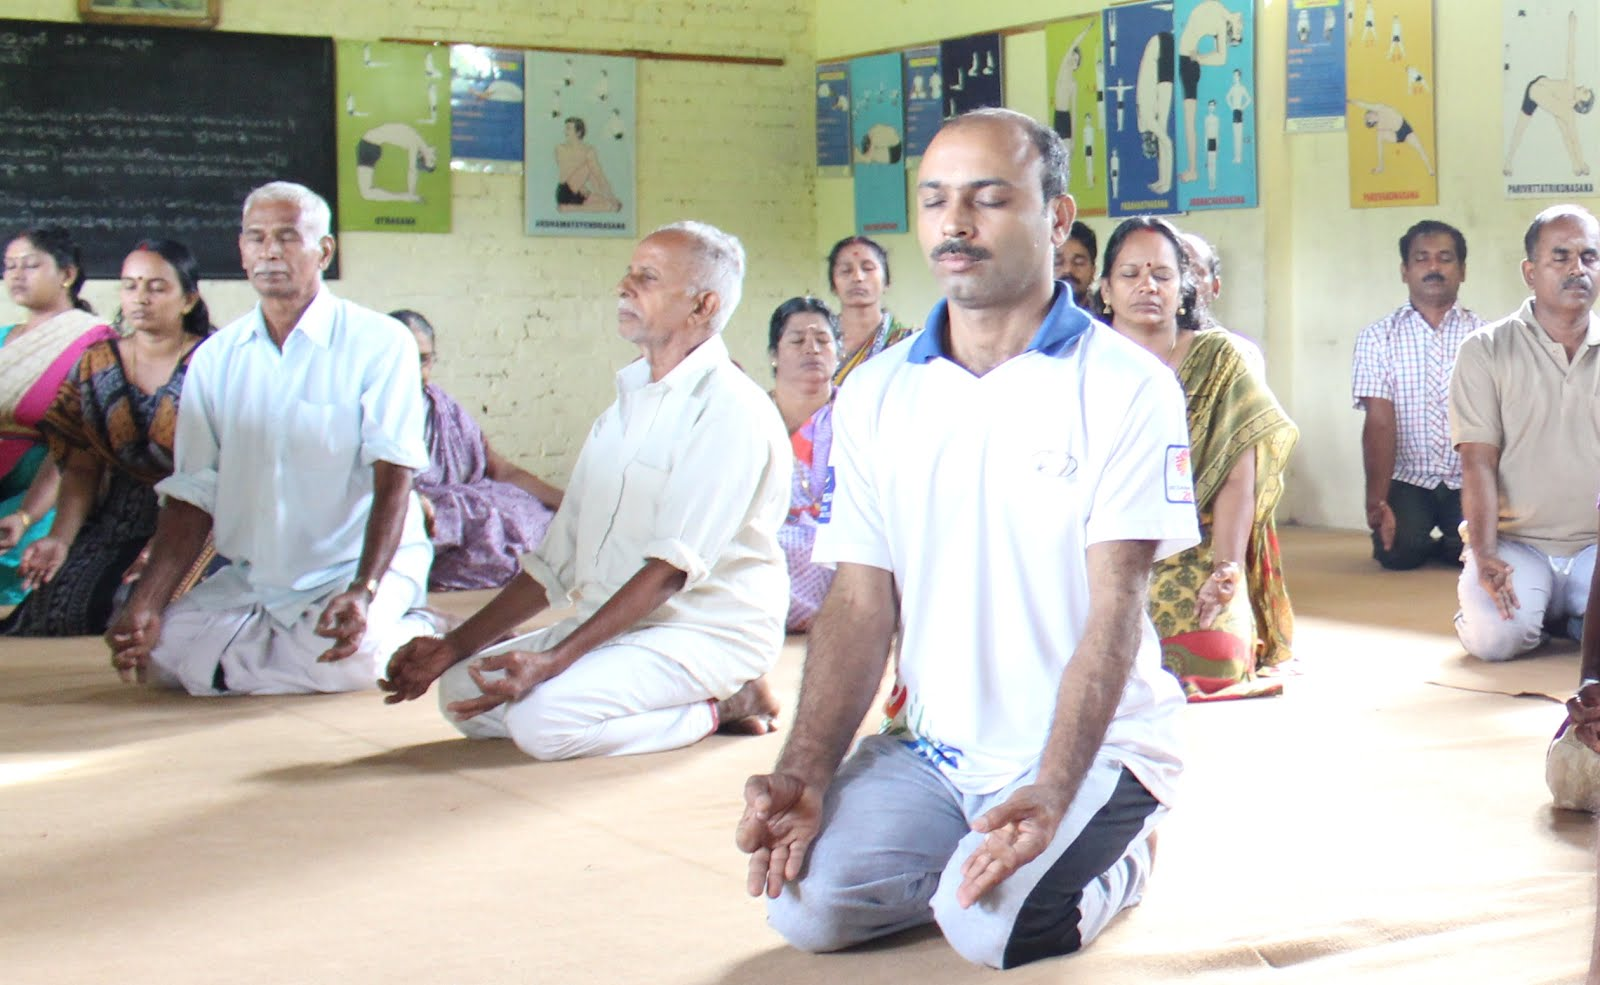 YOGA for Harmony and Peace - 'യോഗ'